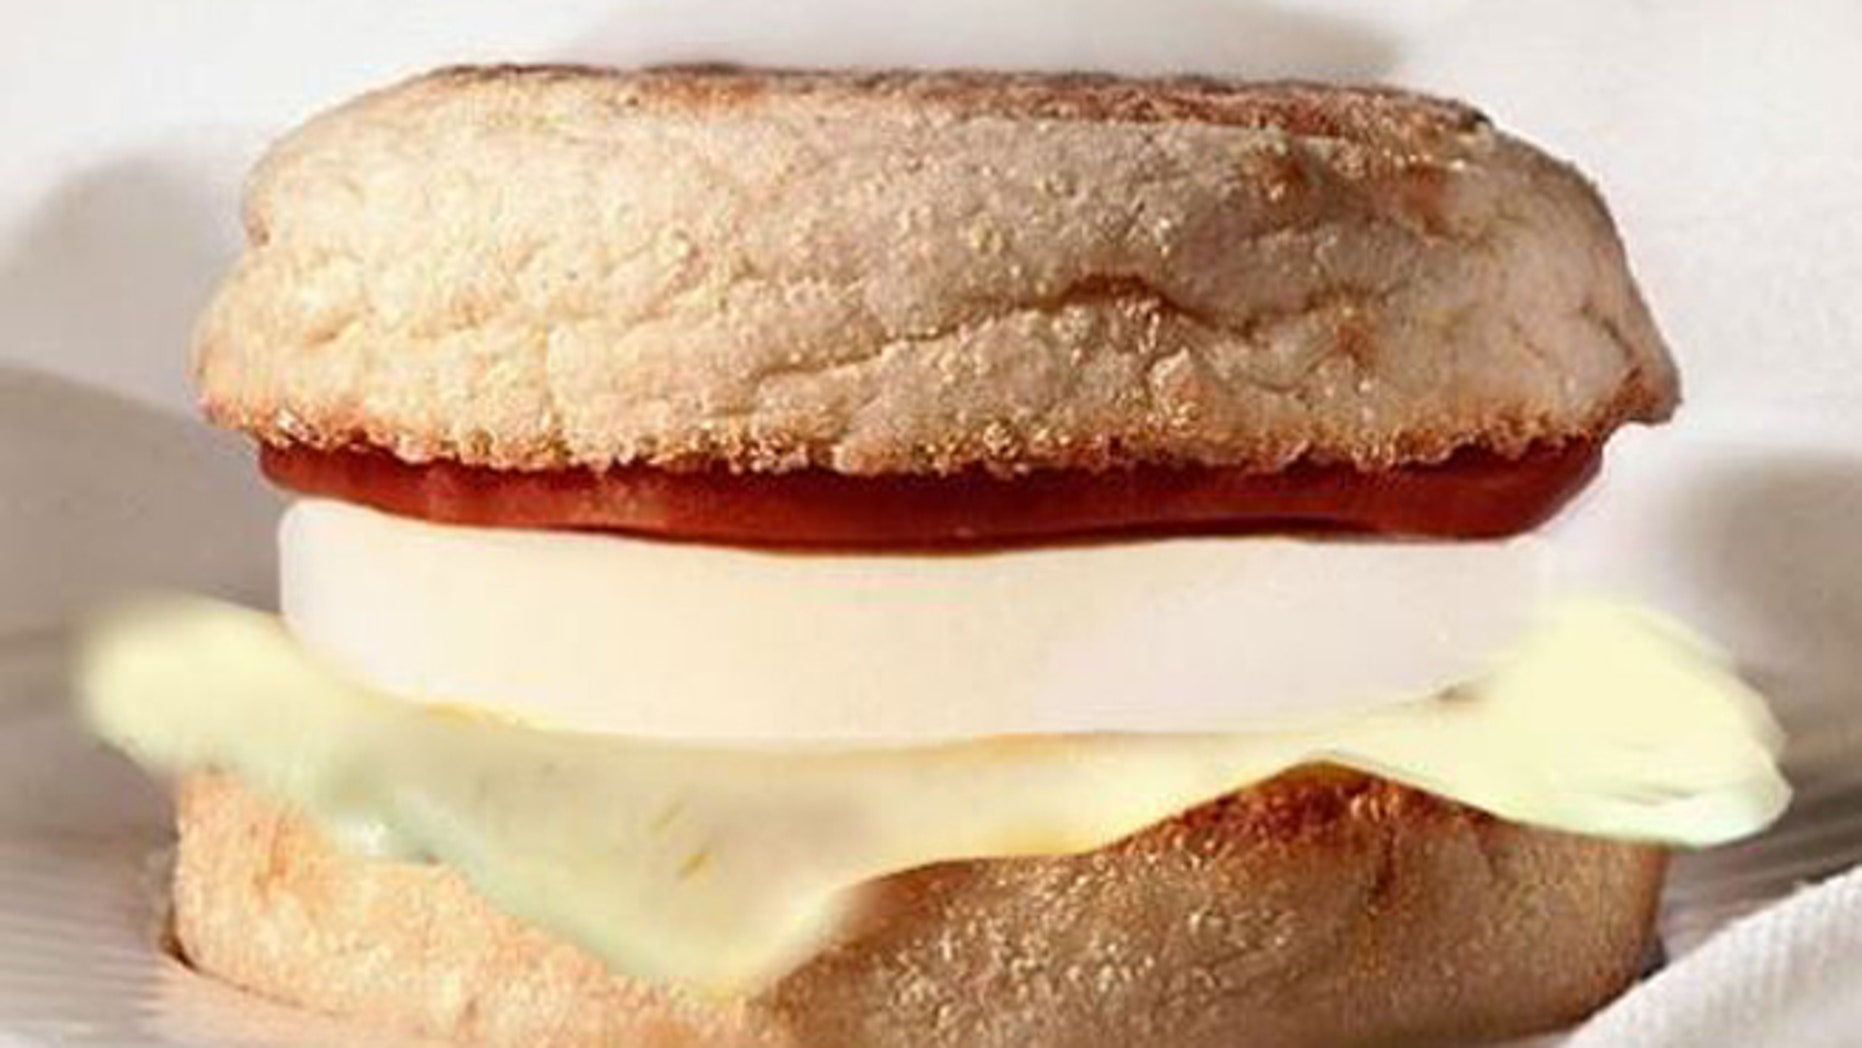 McDonald's popular Egg White Delight.